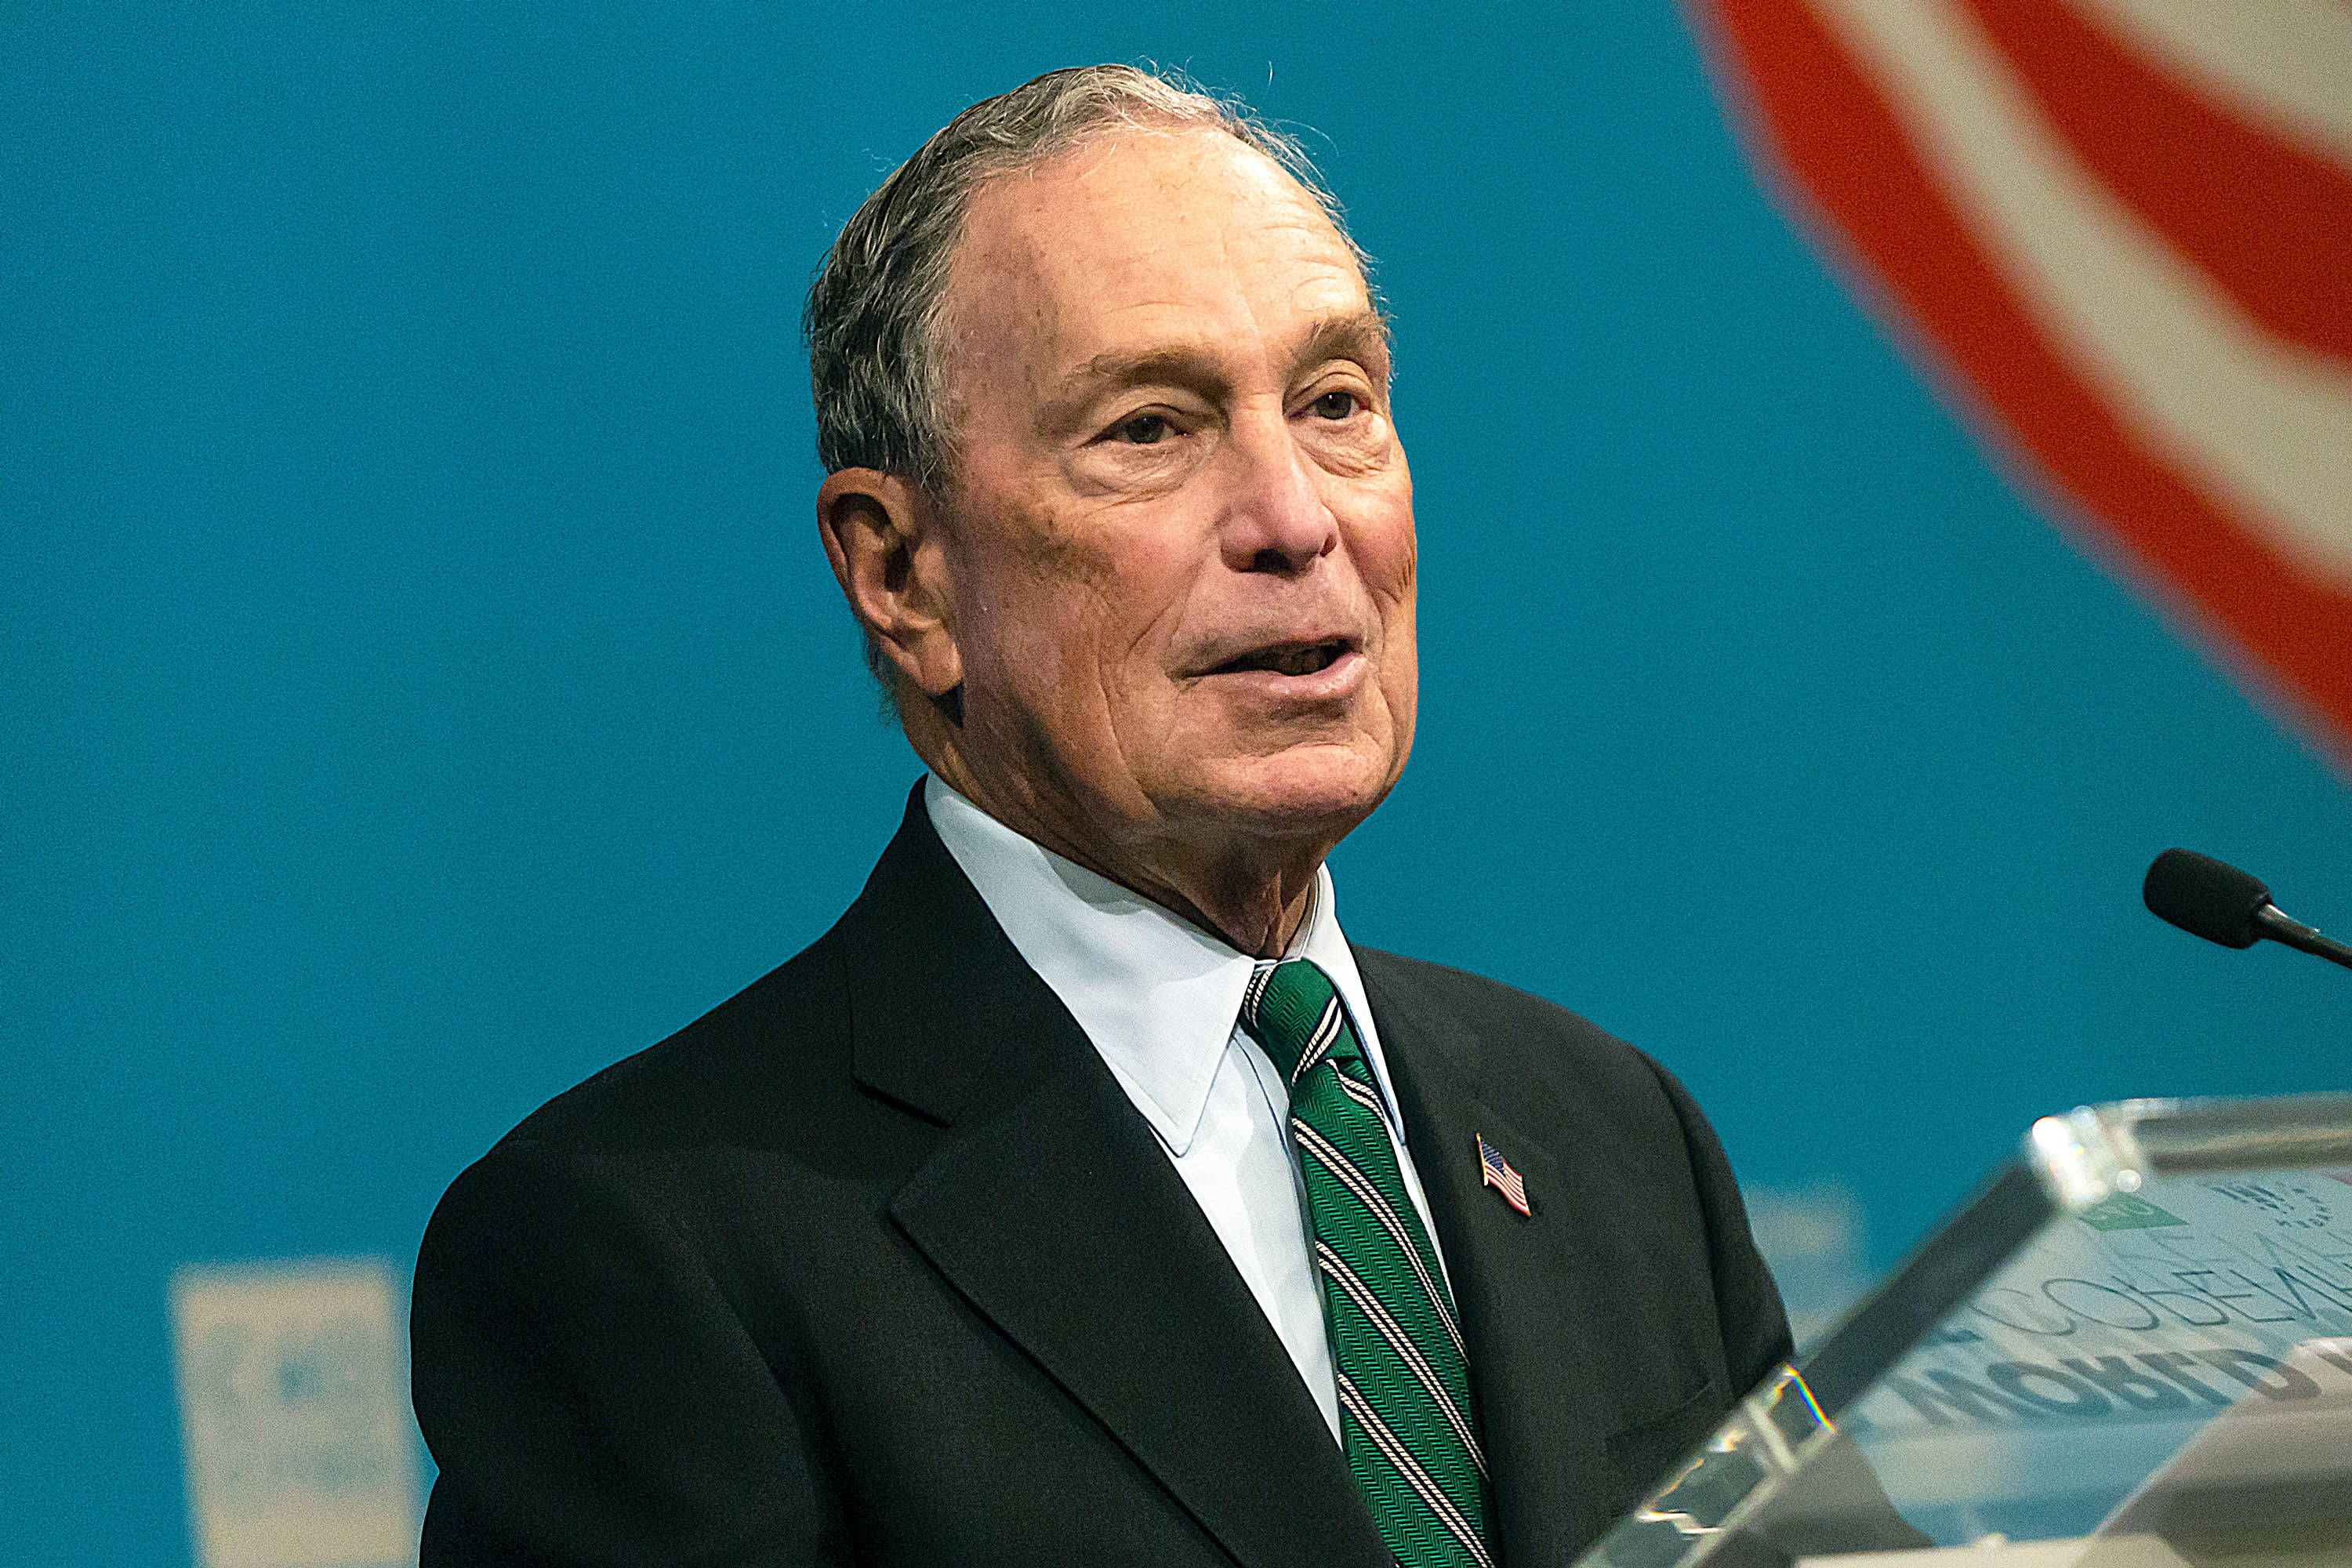 Wall Street execs line up behind Mike Bloomberg–which could hurt fundraising for Biden, others